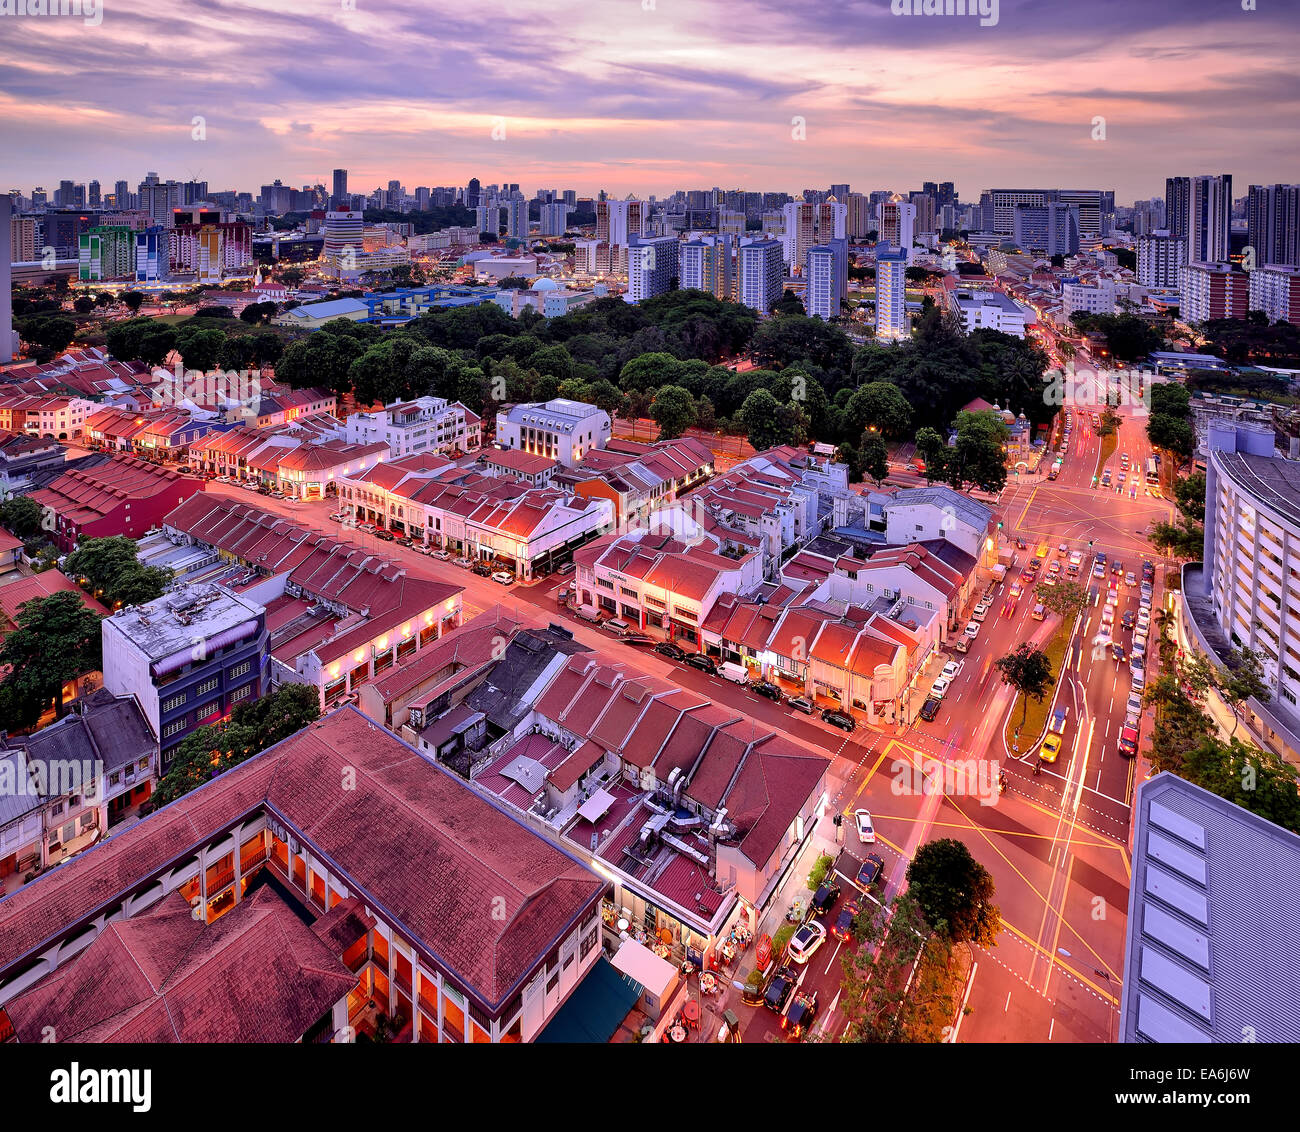 Singapore, City skyline at dusk - Stock Image